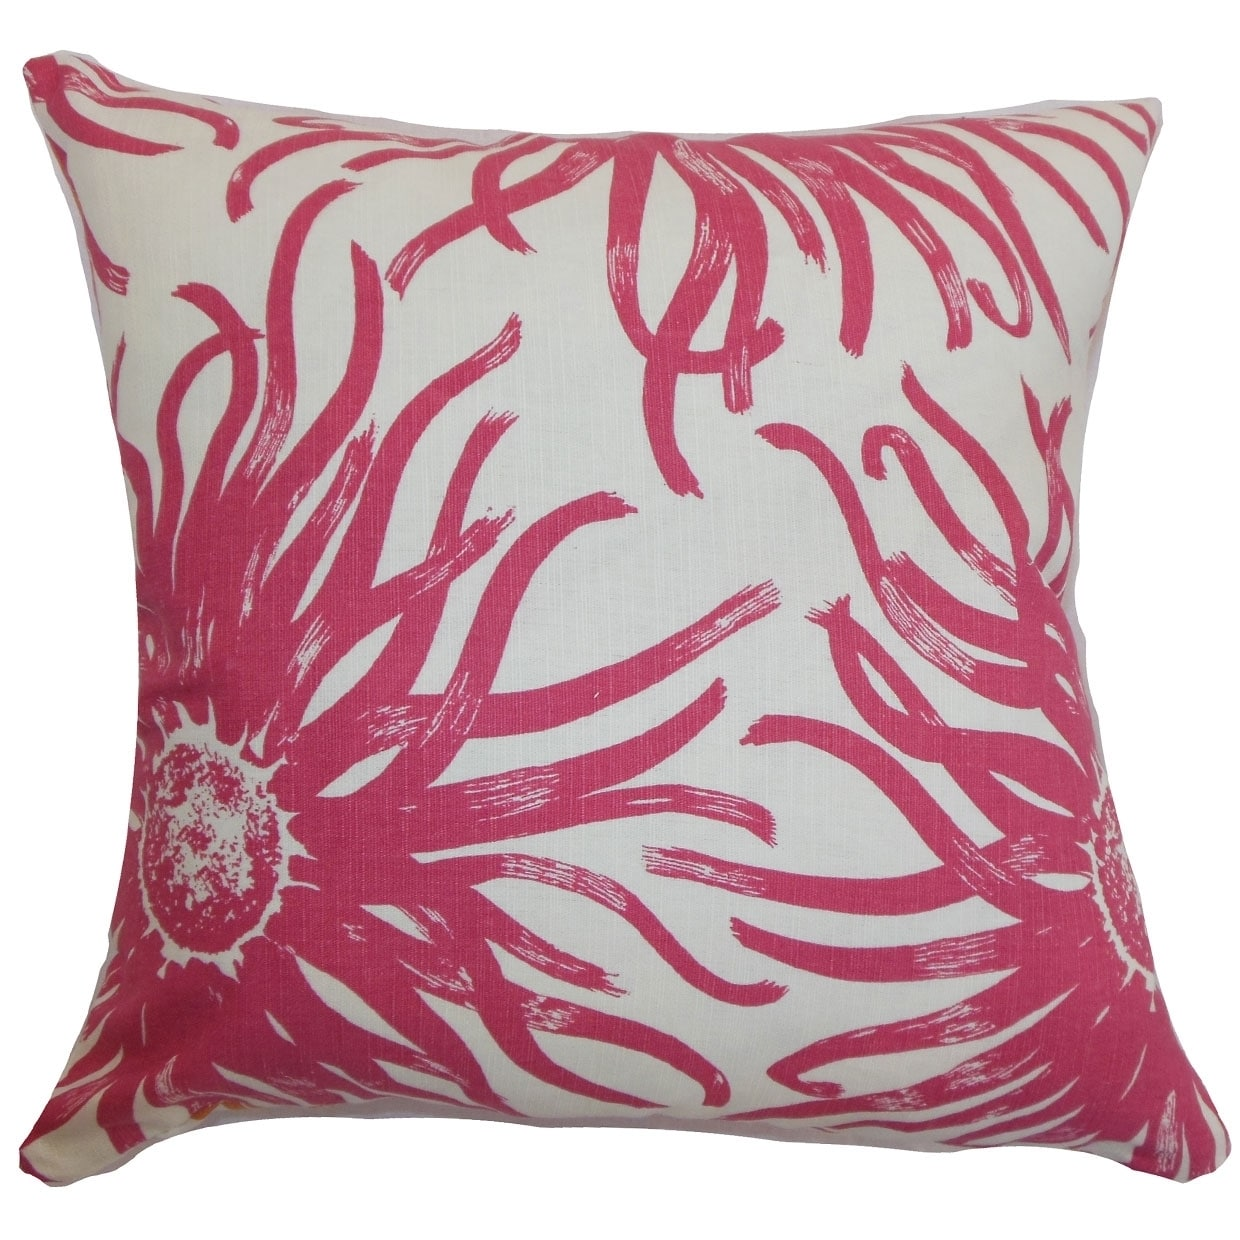 Ndele Floral Down Filled Throw Pillow Rosewood